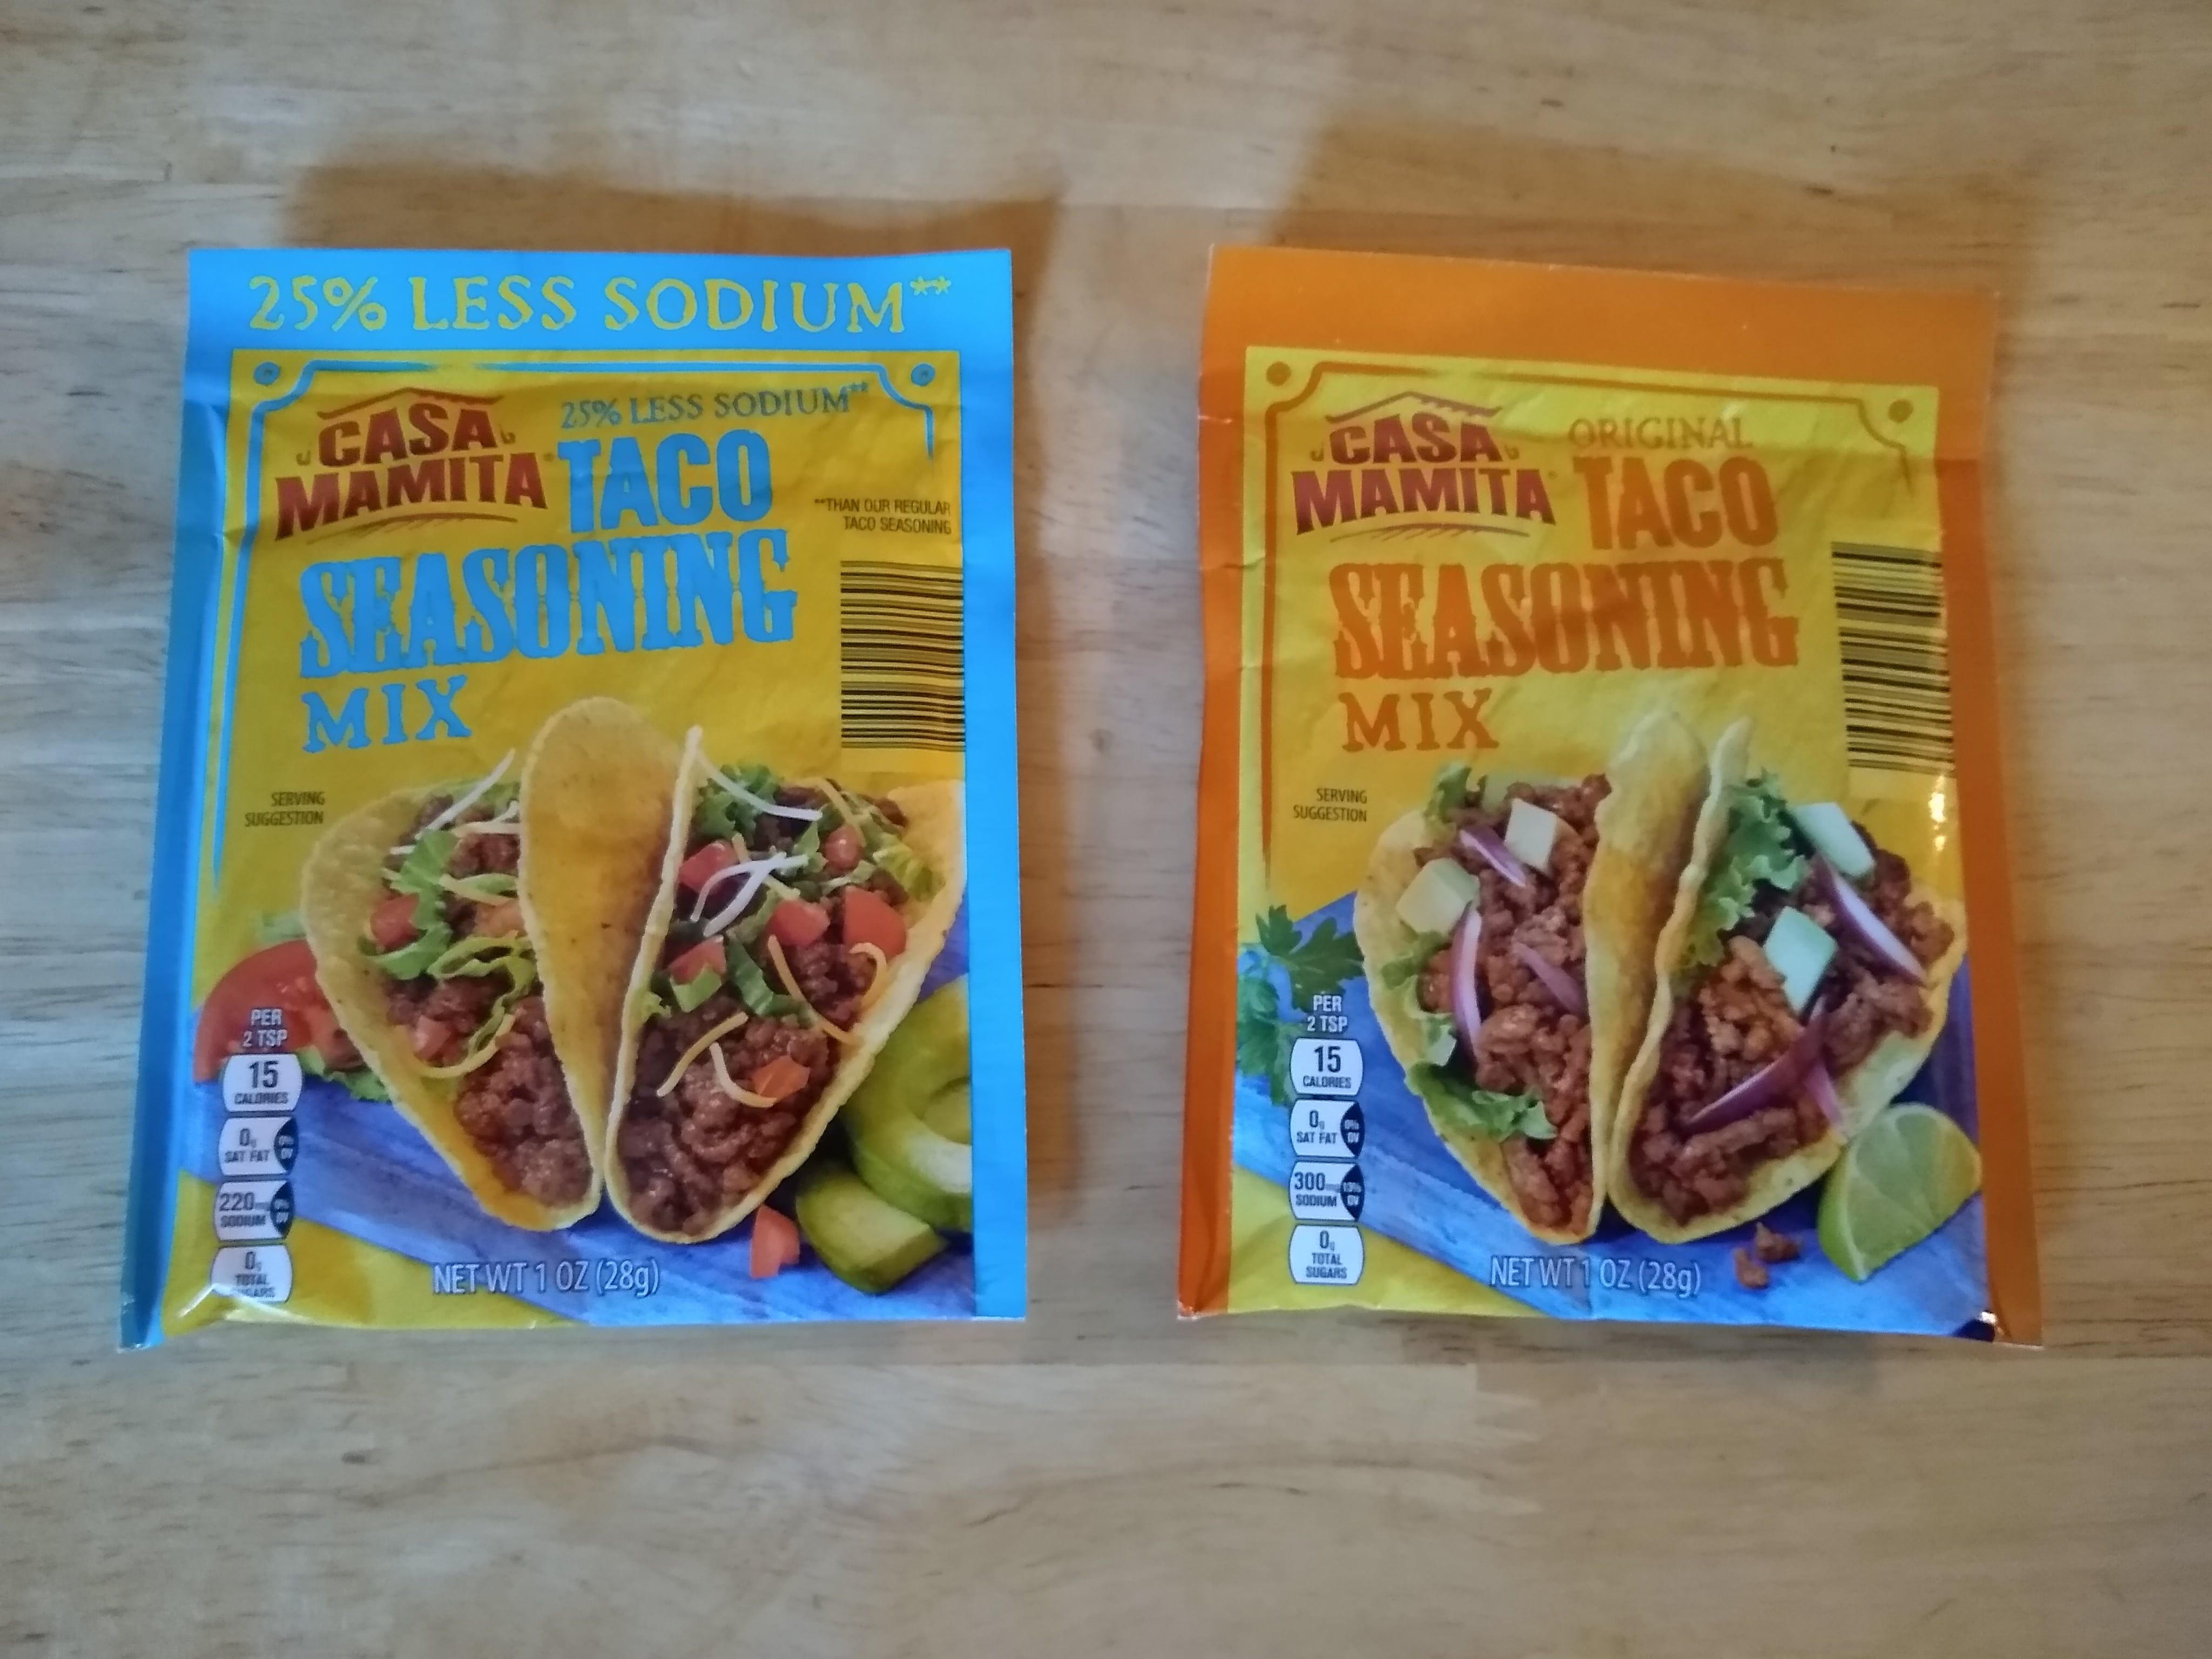 Casa Mamita Taco Seasoning Mix Aldi Reviewer Tacos Taco Mix Seasoning Seasoning Mixes